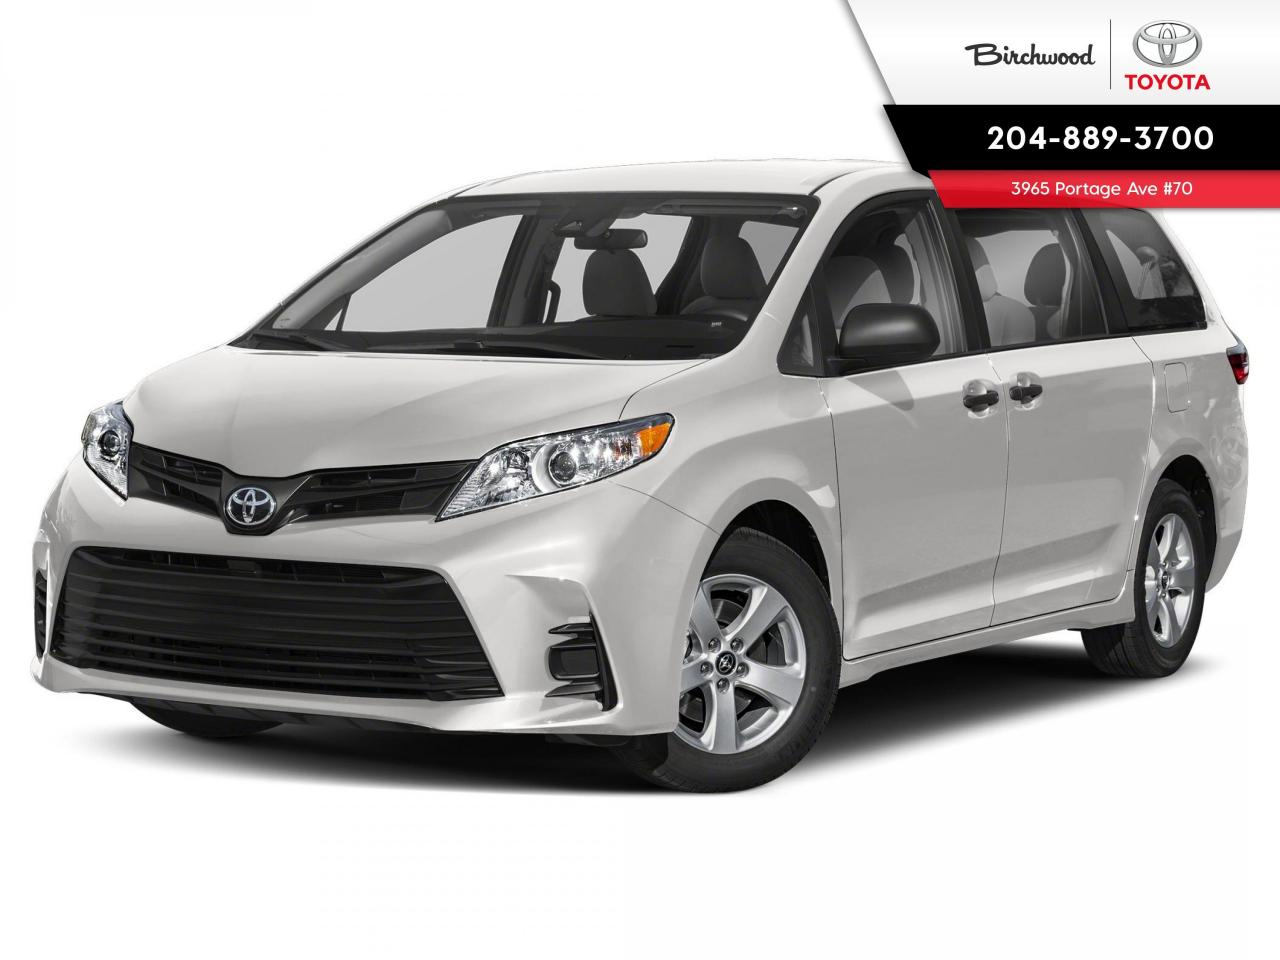 used 2020 toyota sienna ce 7pass v6 for sale in winnipeg, manitoba carpages.ca